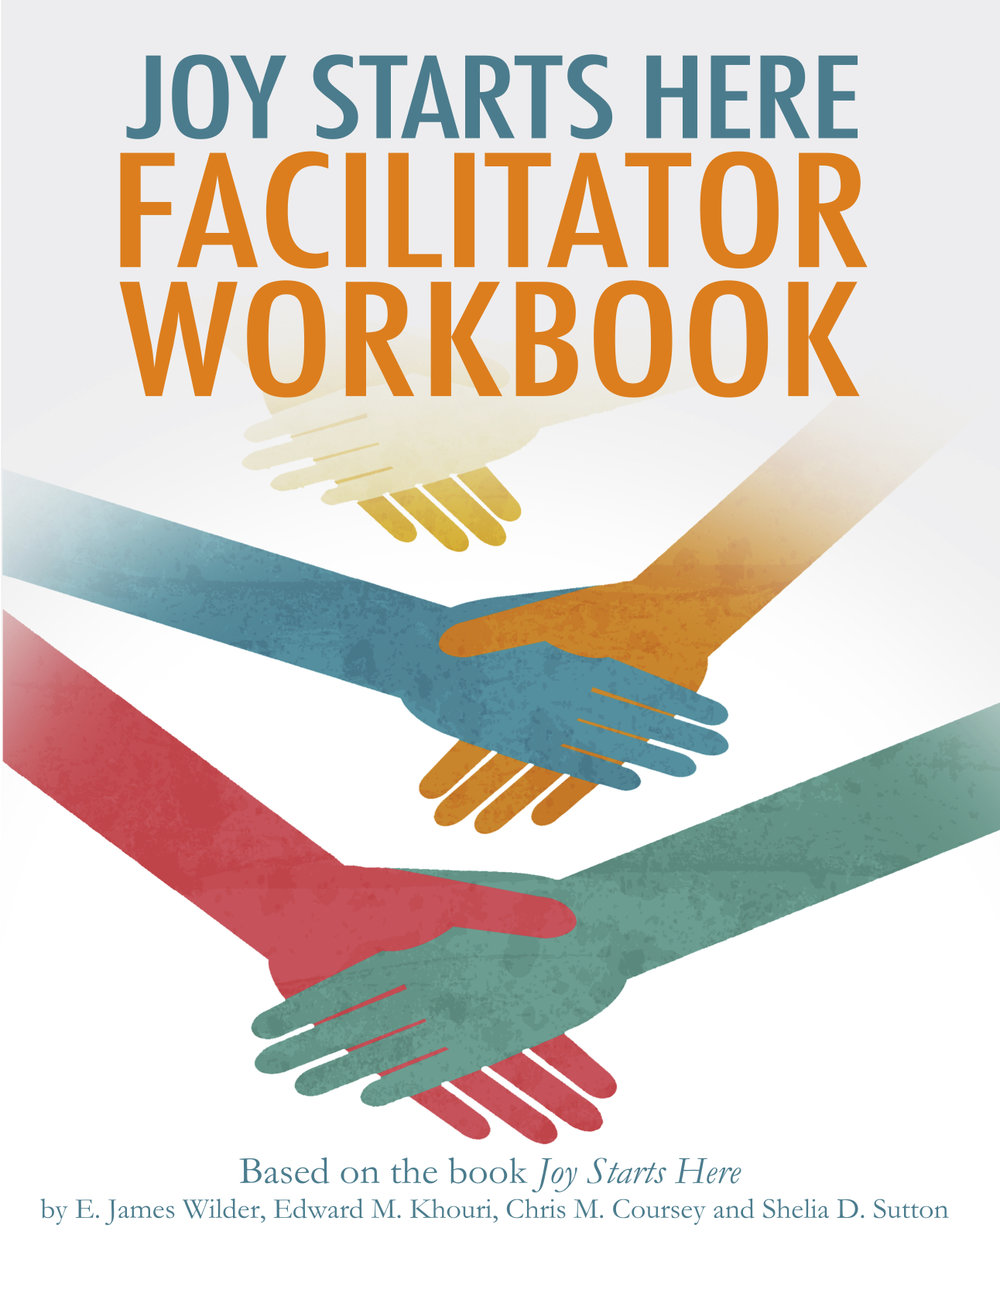 JSH_Facilitator Workbook.jpg